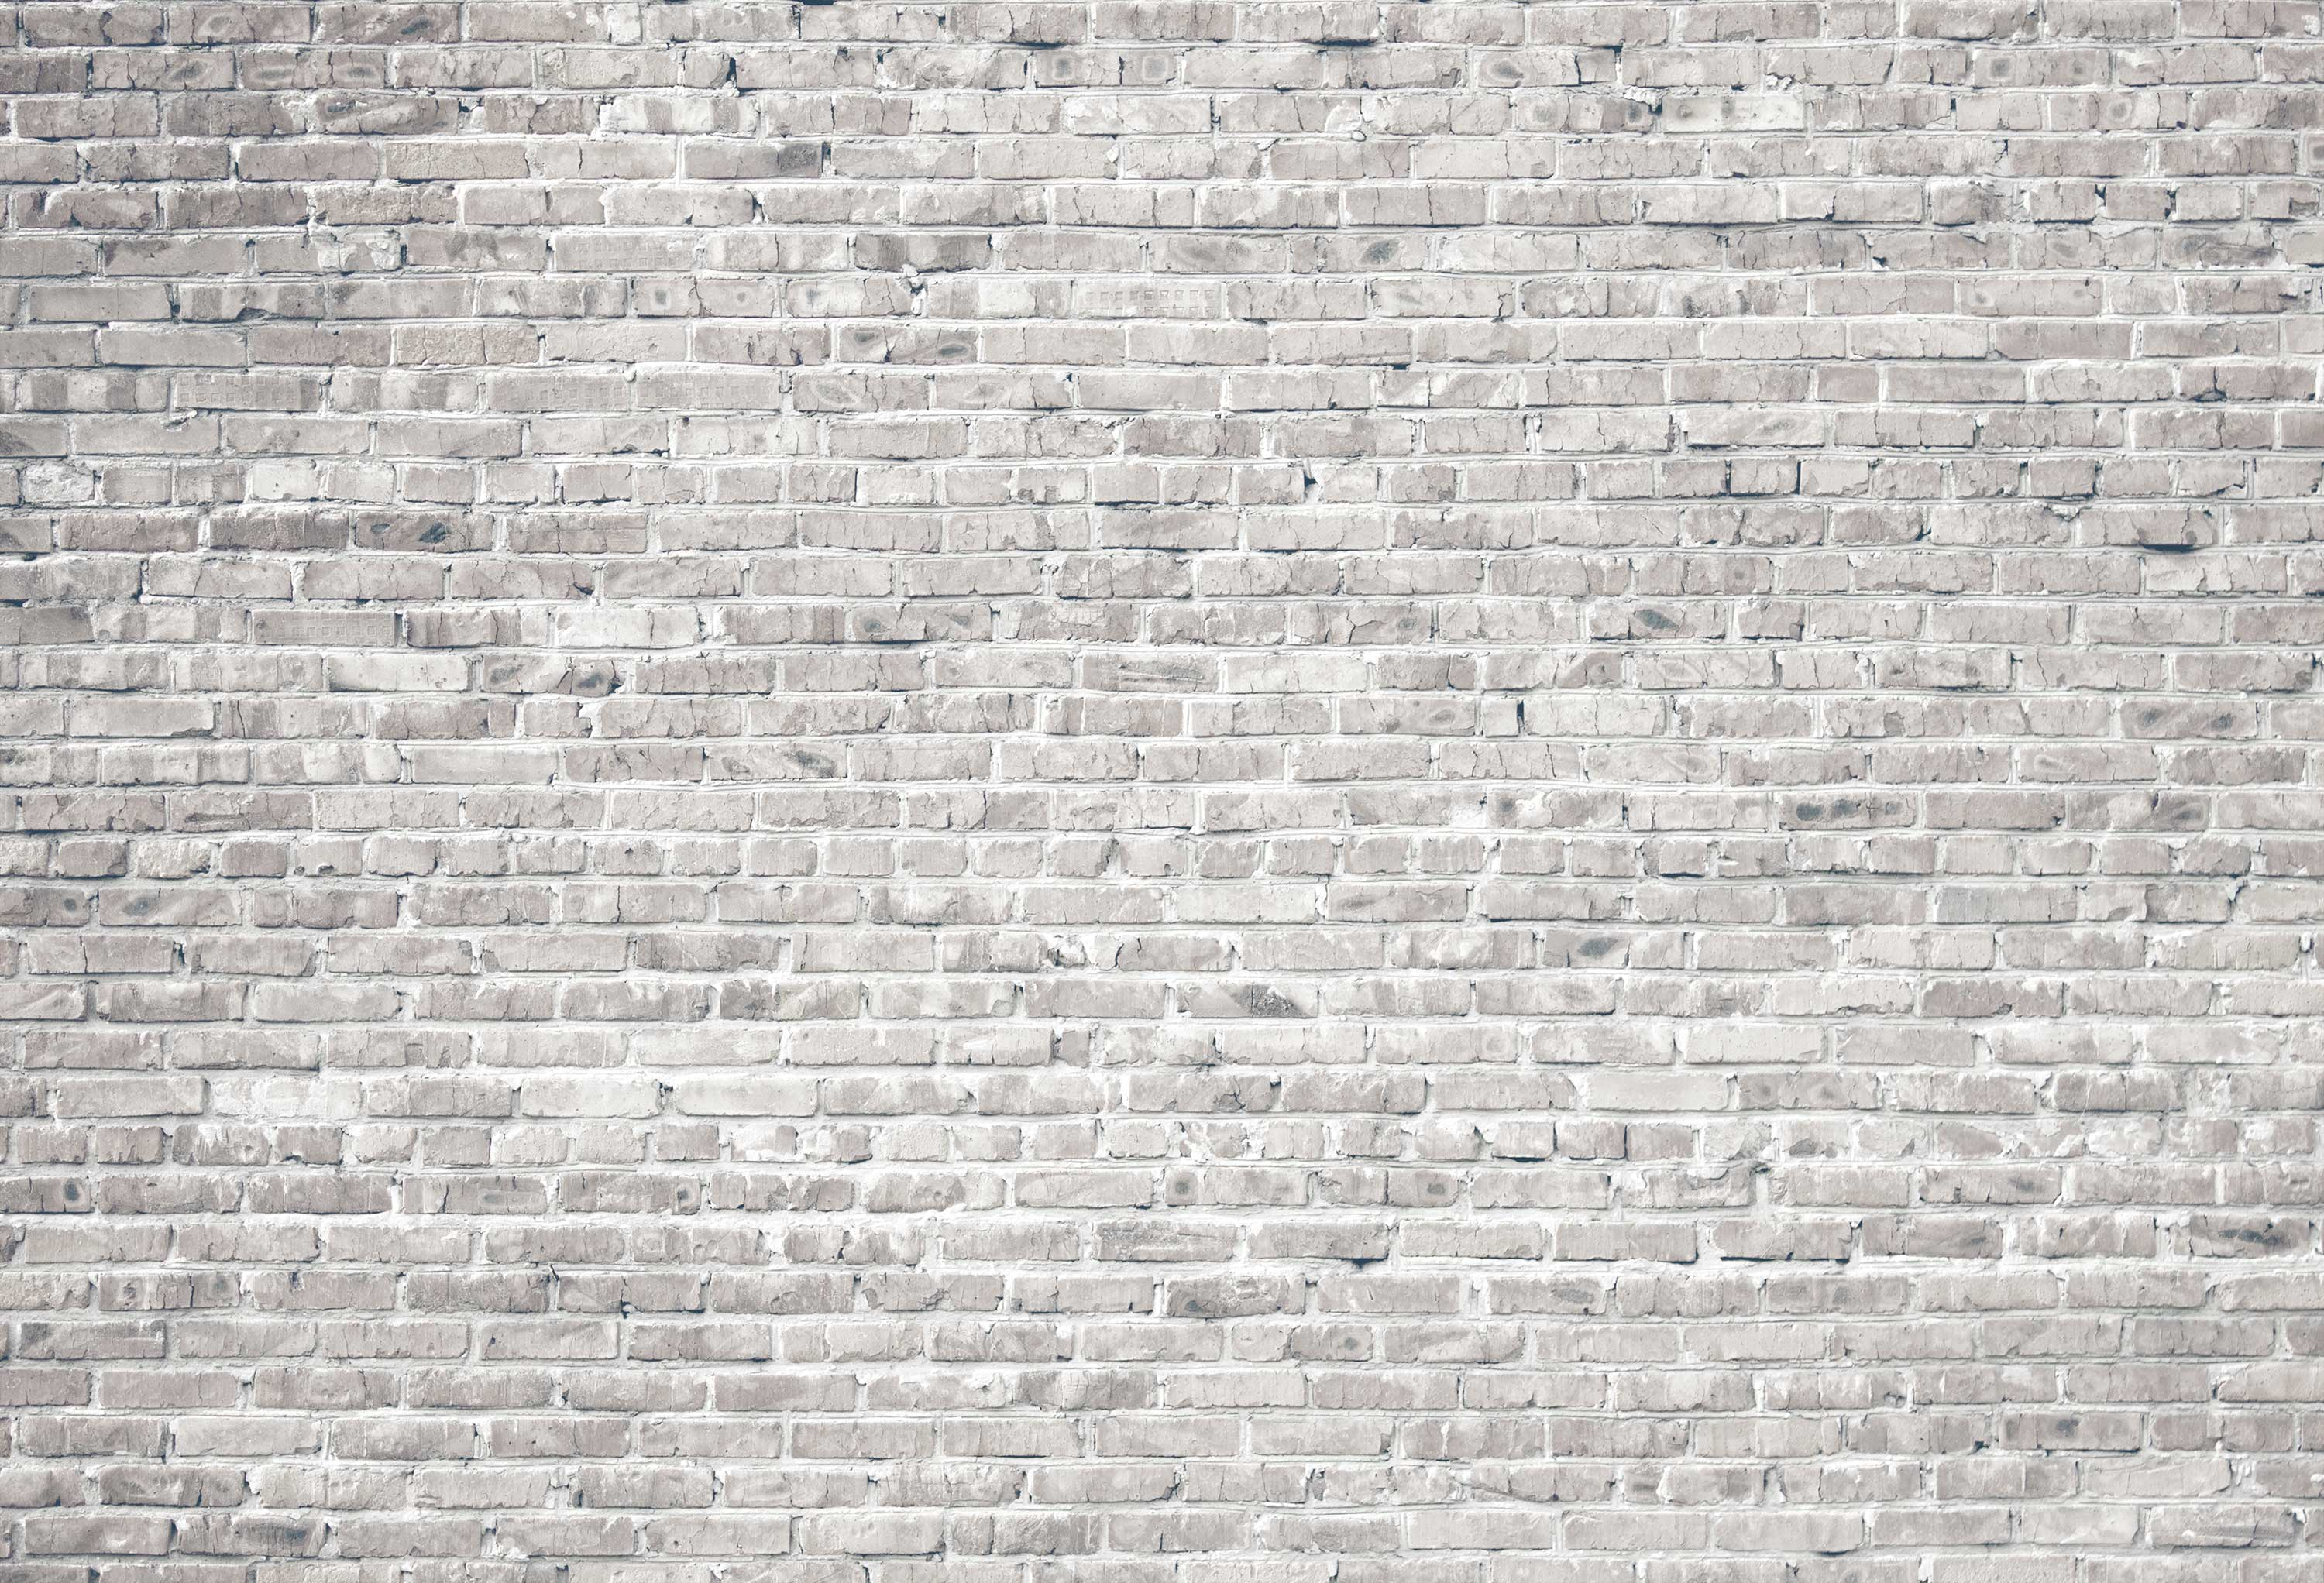 White grunge basic brick wall - 155641904 - Decomurale inc.